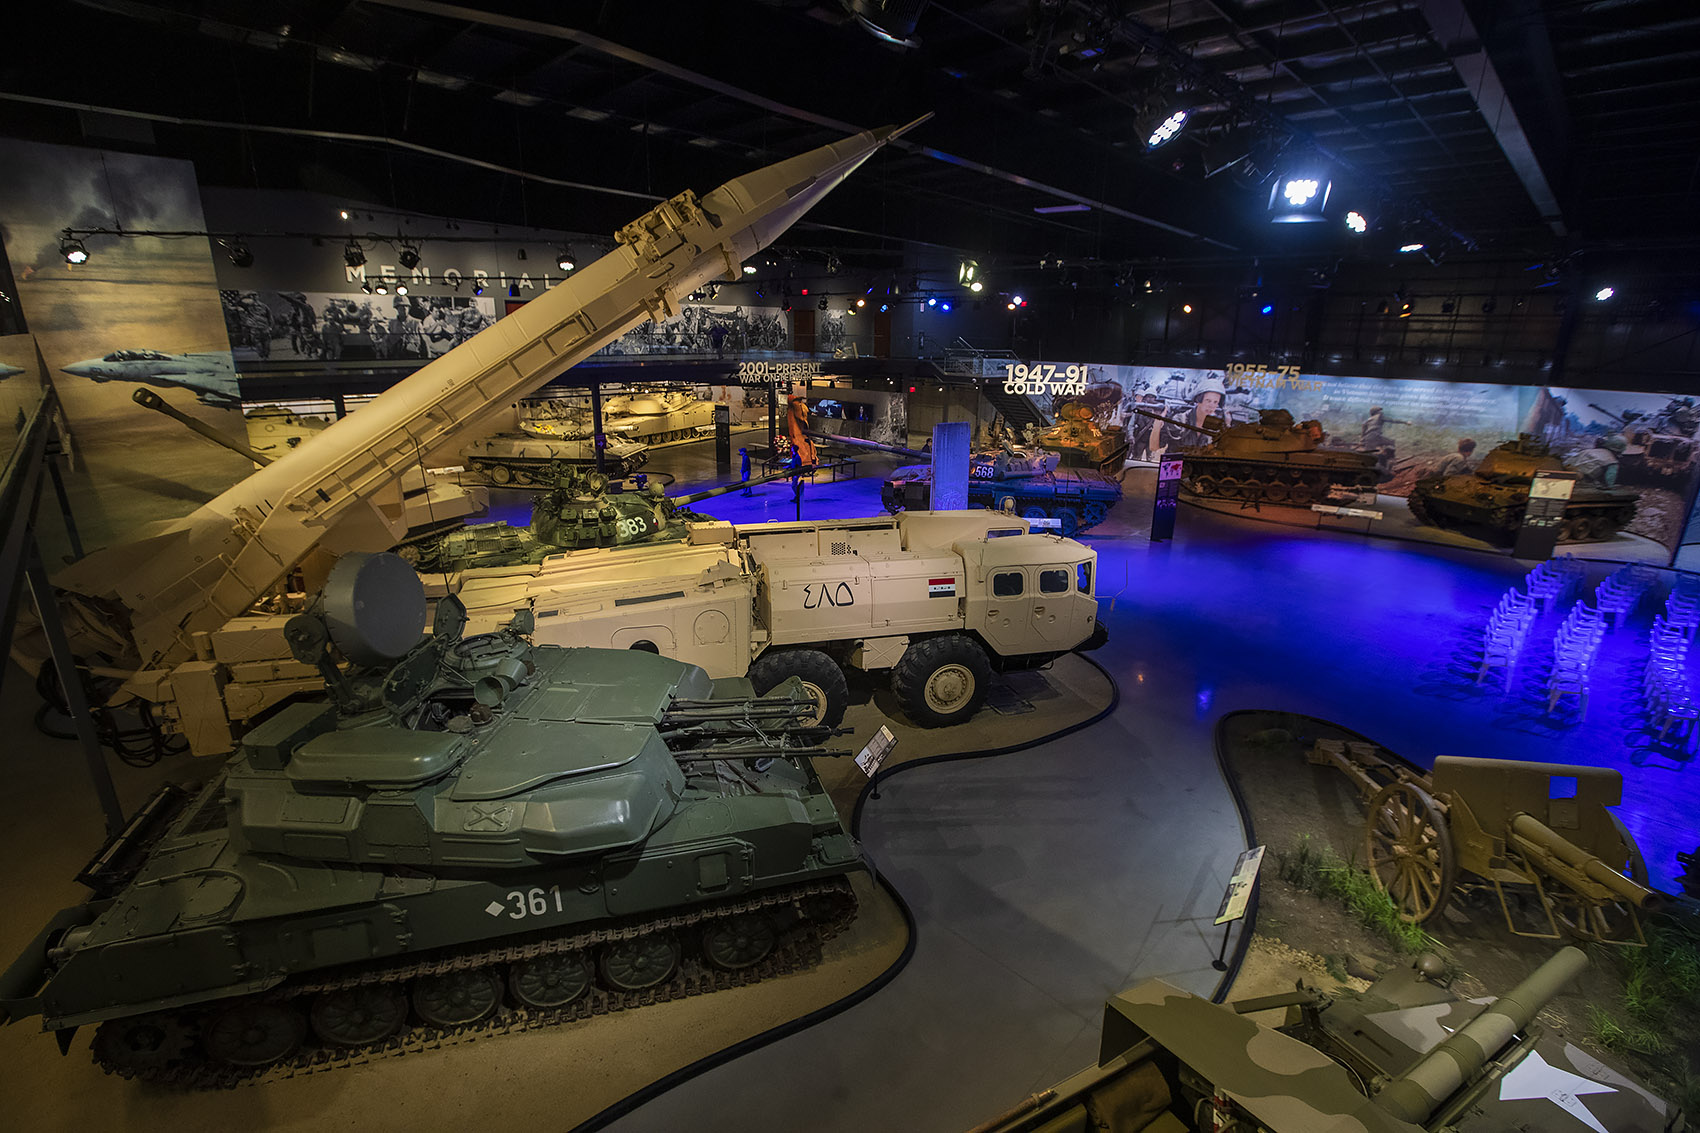 The American Heritage Museum in Stow, which opens to the public Friday, features tanks, armored vehicles and military artifacts. (Jesse Costa/WBUR)